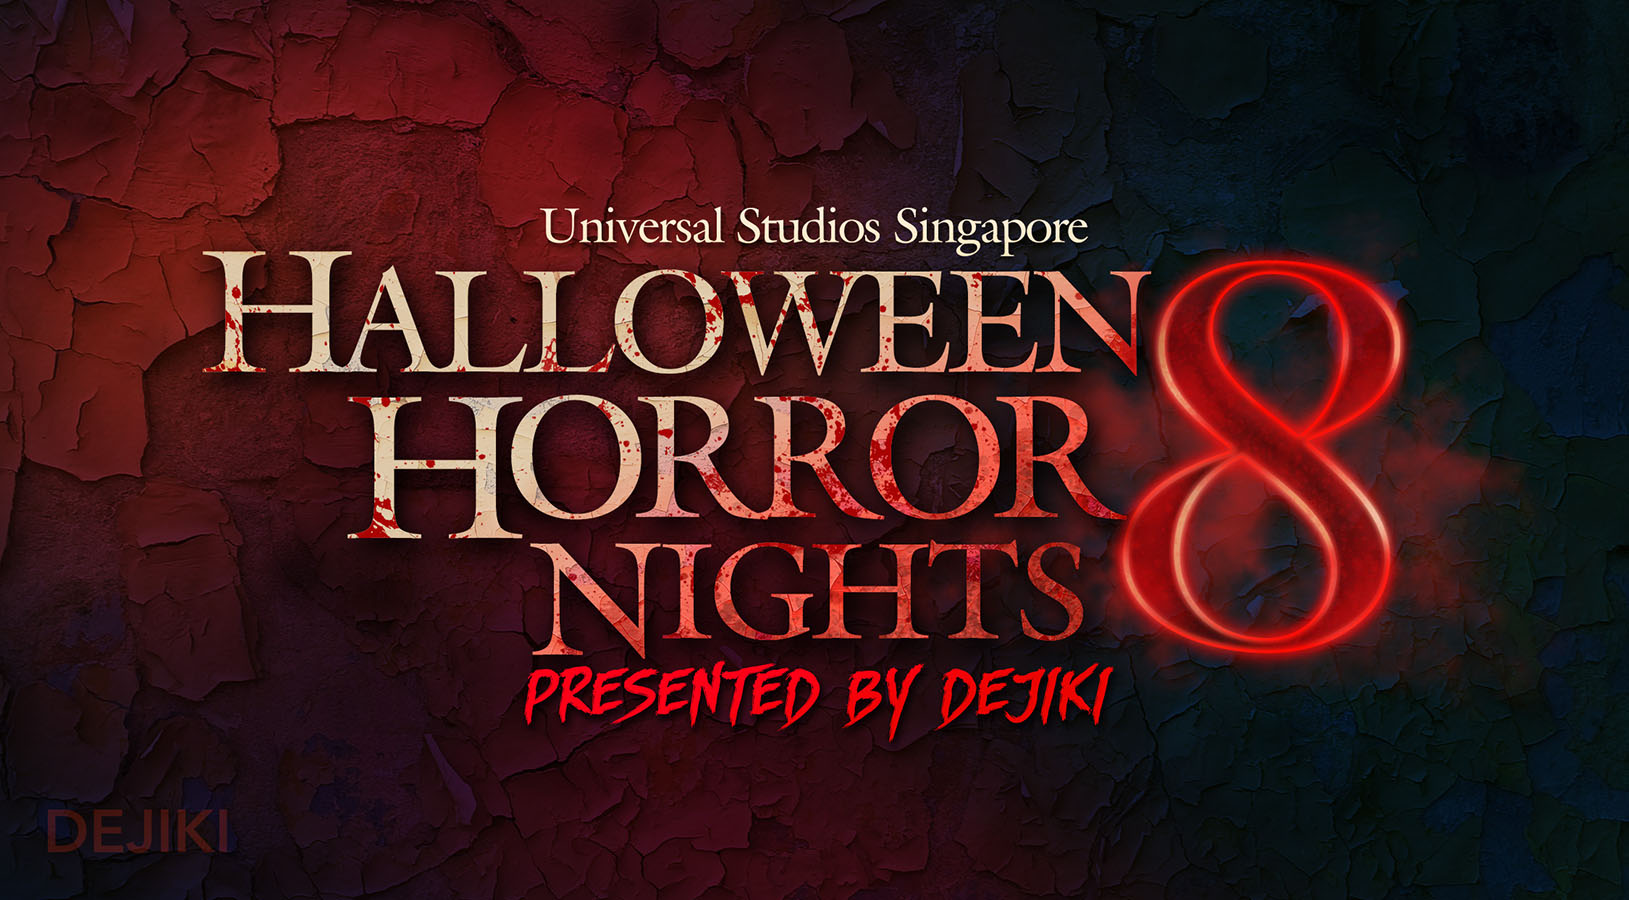 Halloween Horror Nights 8 logo by Dejiki.com Full Event Line-Up and Ticketing Information